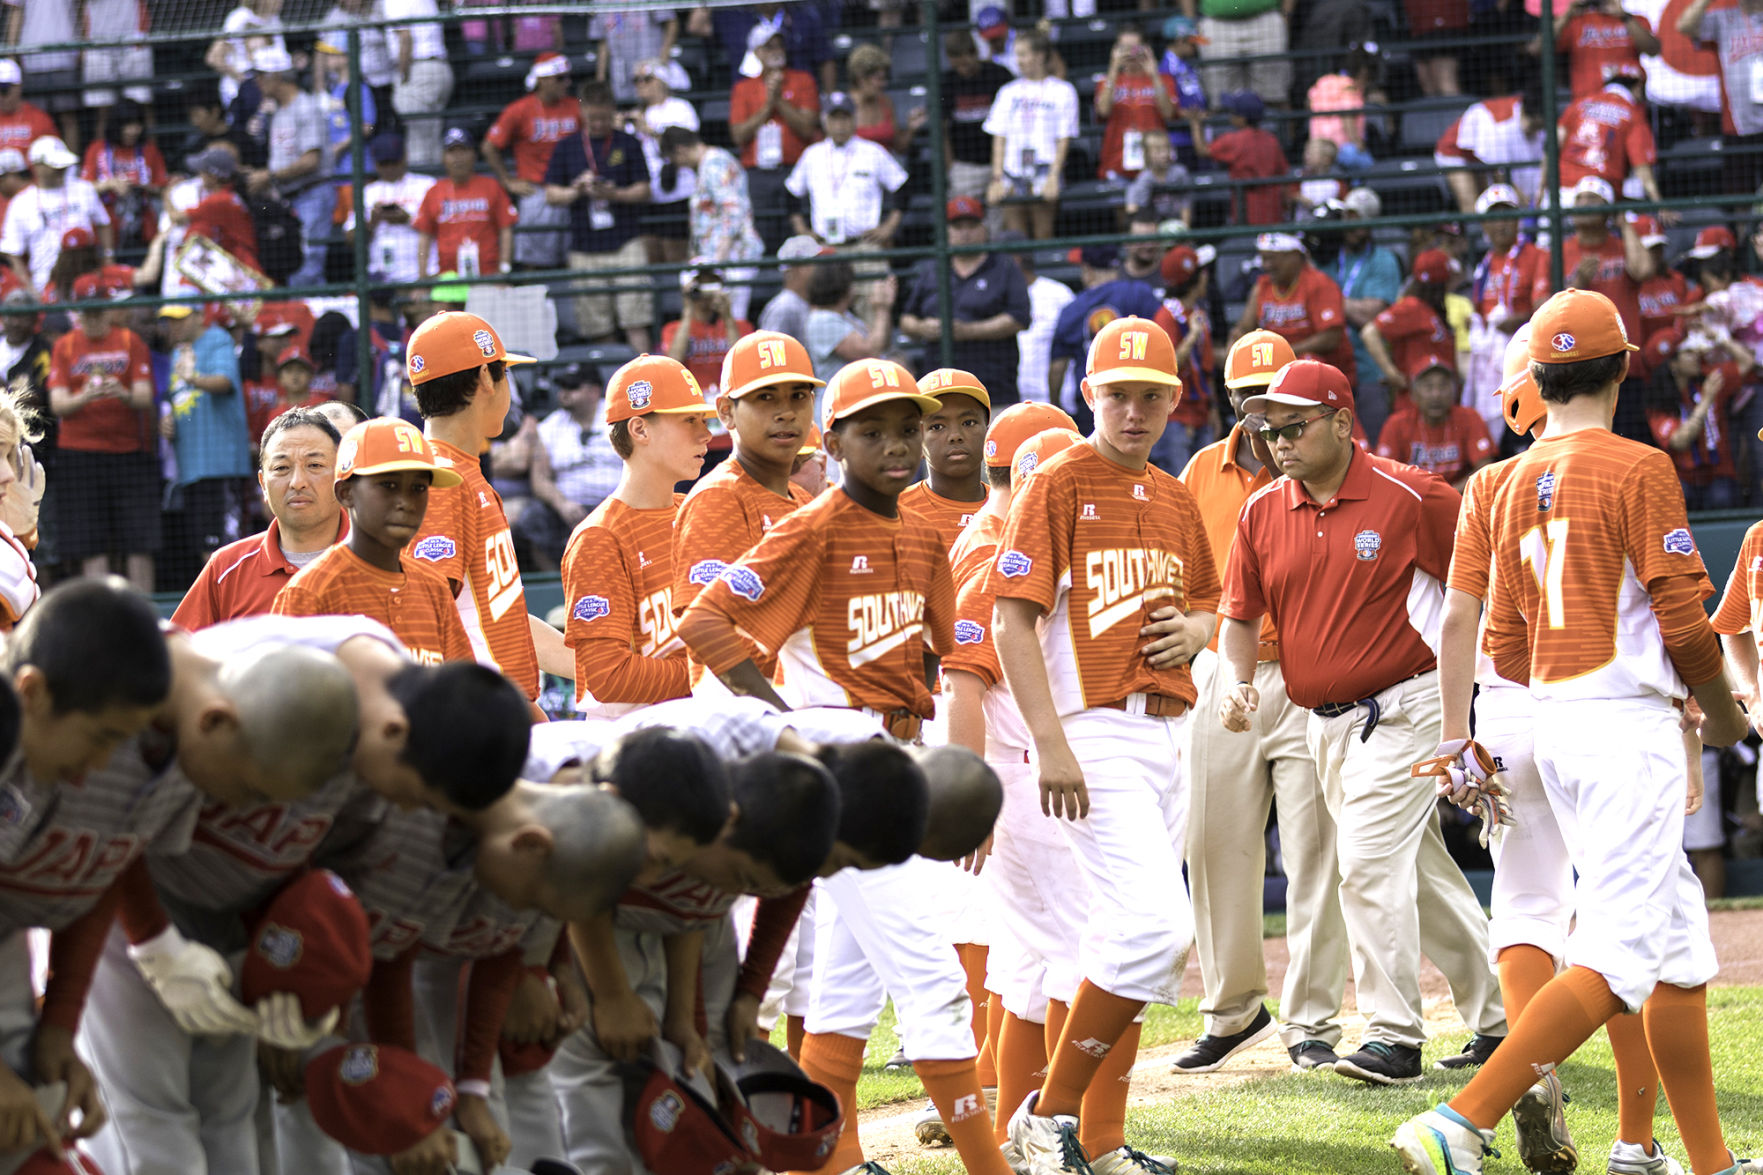 Texas, Japan advance to the LLWS title game